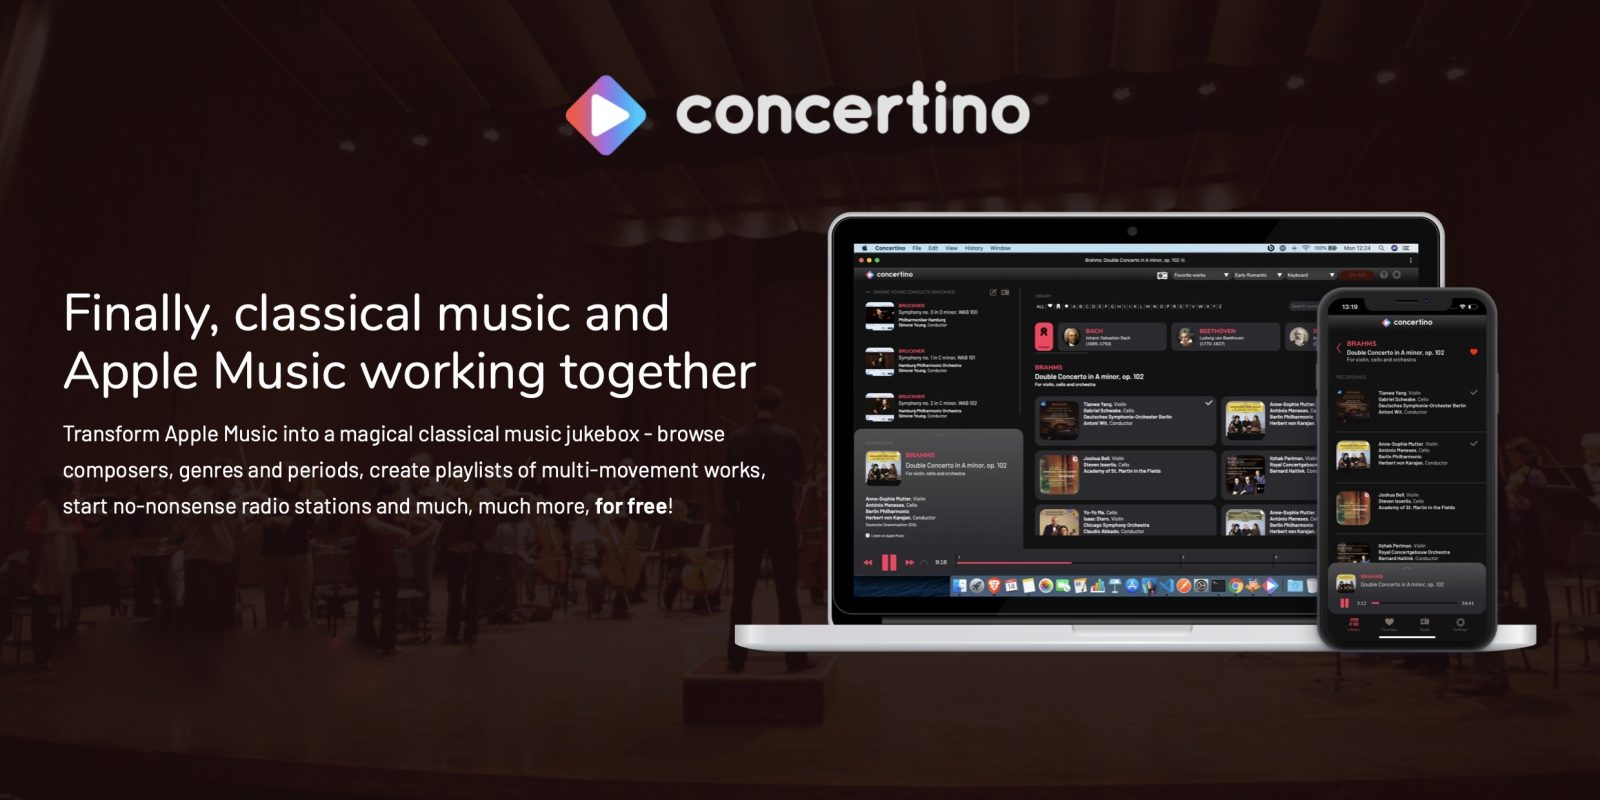 Concertino web app turns Apple Music into a 'magical classical music jukebox'